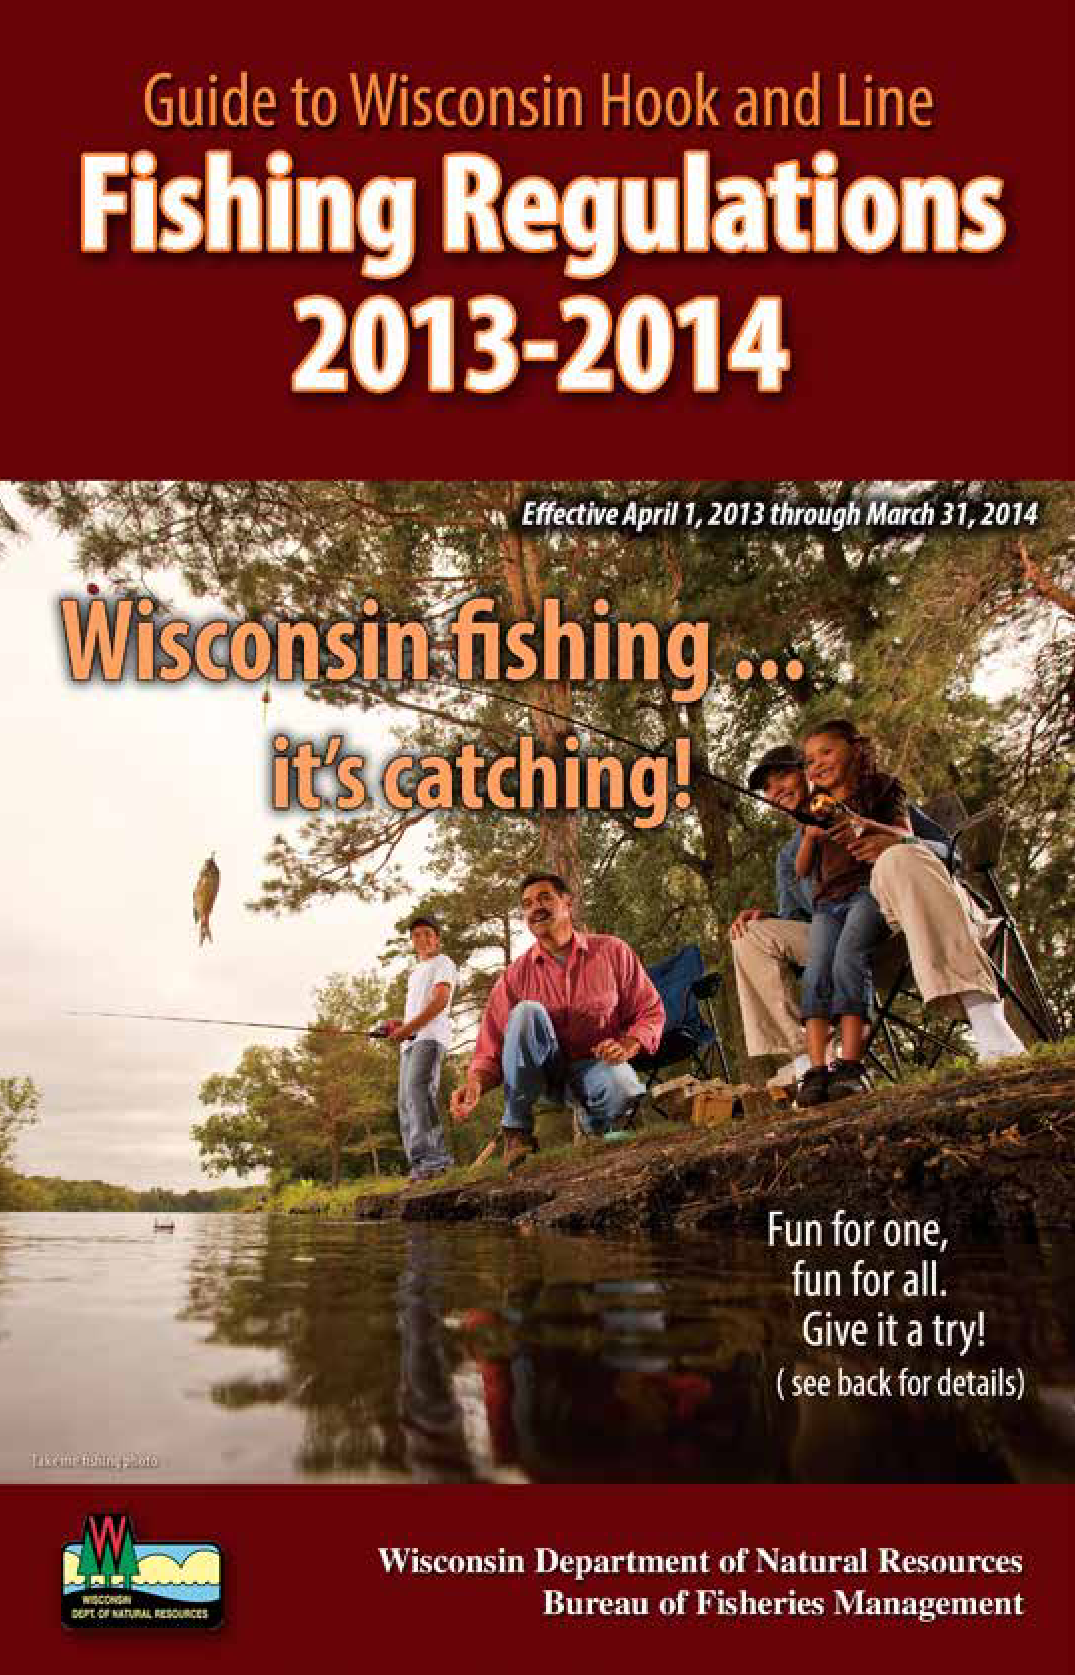 Guide to Wisconsin hook and line fishing regulations (2013